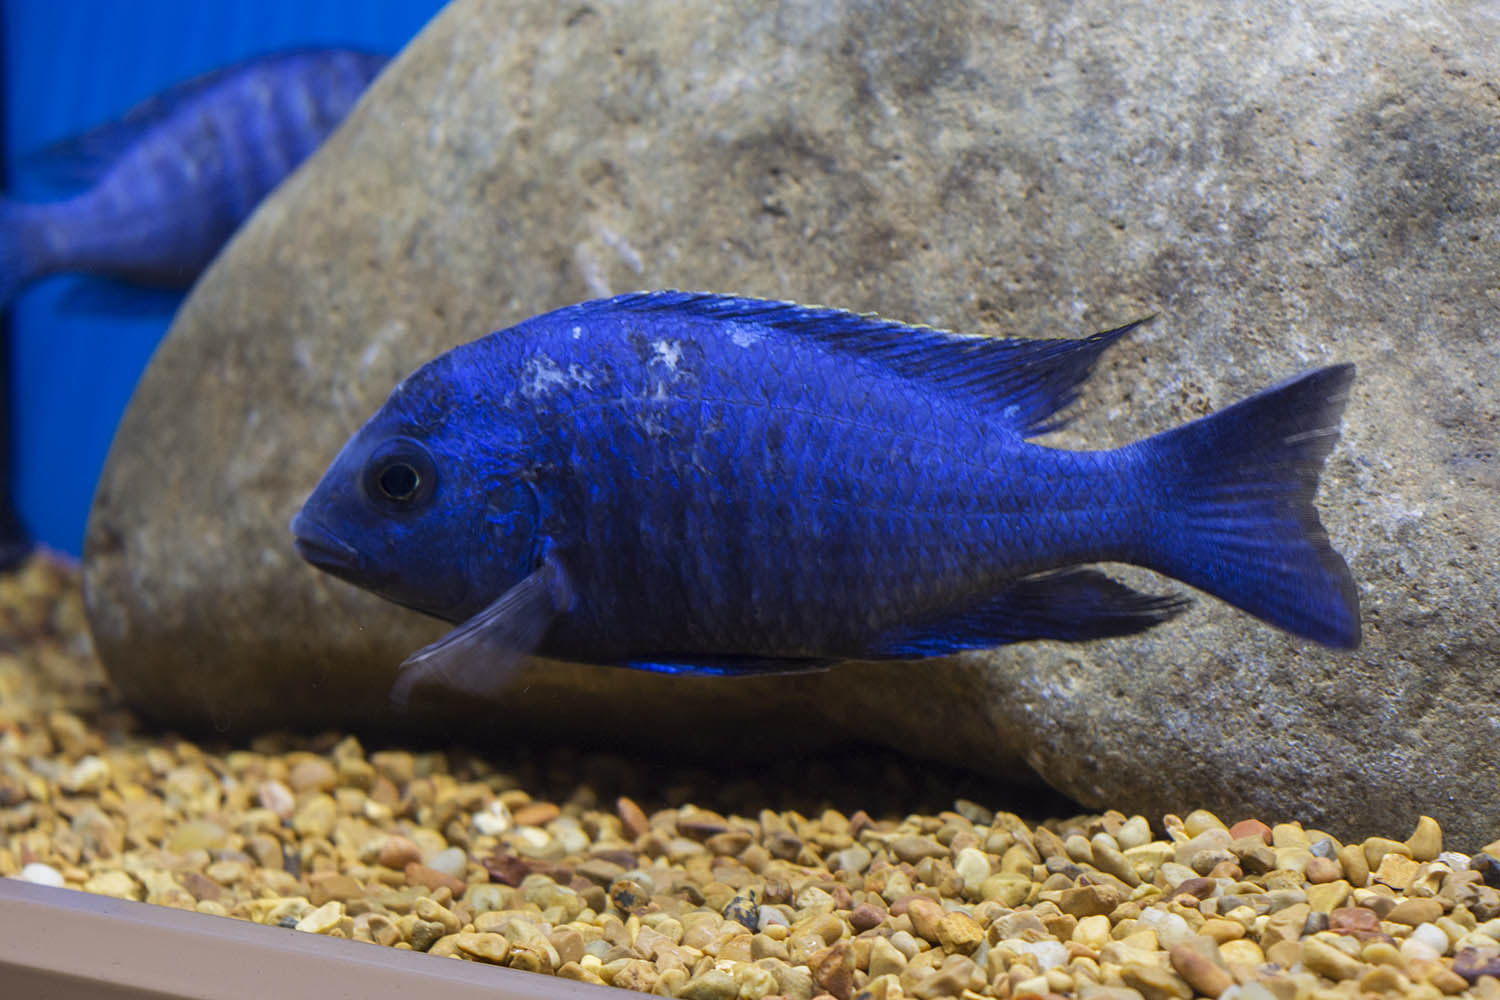 One of Lake Malawi's lesser-known gems, Placidichromis sp. 'Tanzania Star Sapphire' from Imperial Tropicals